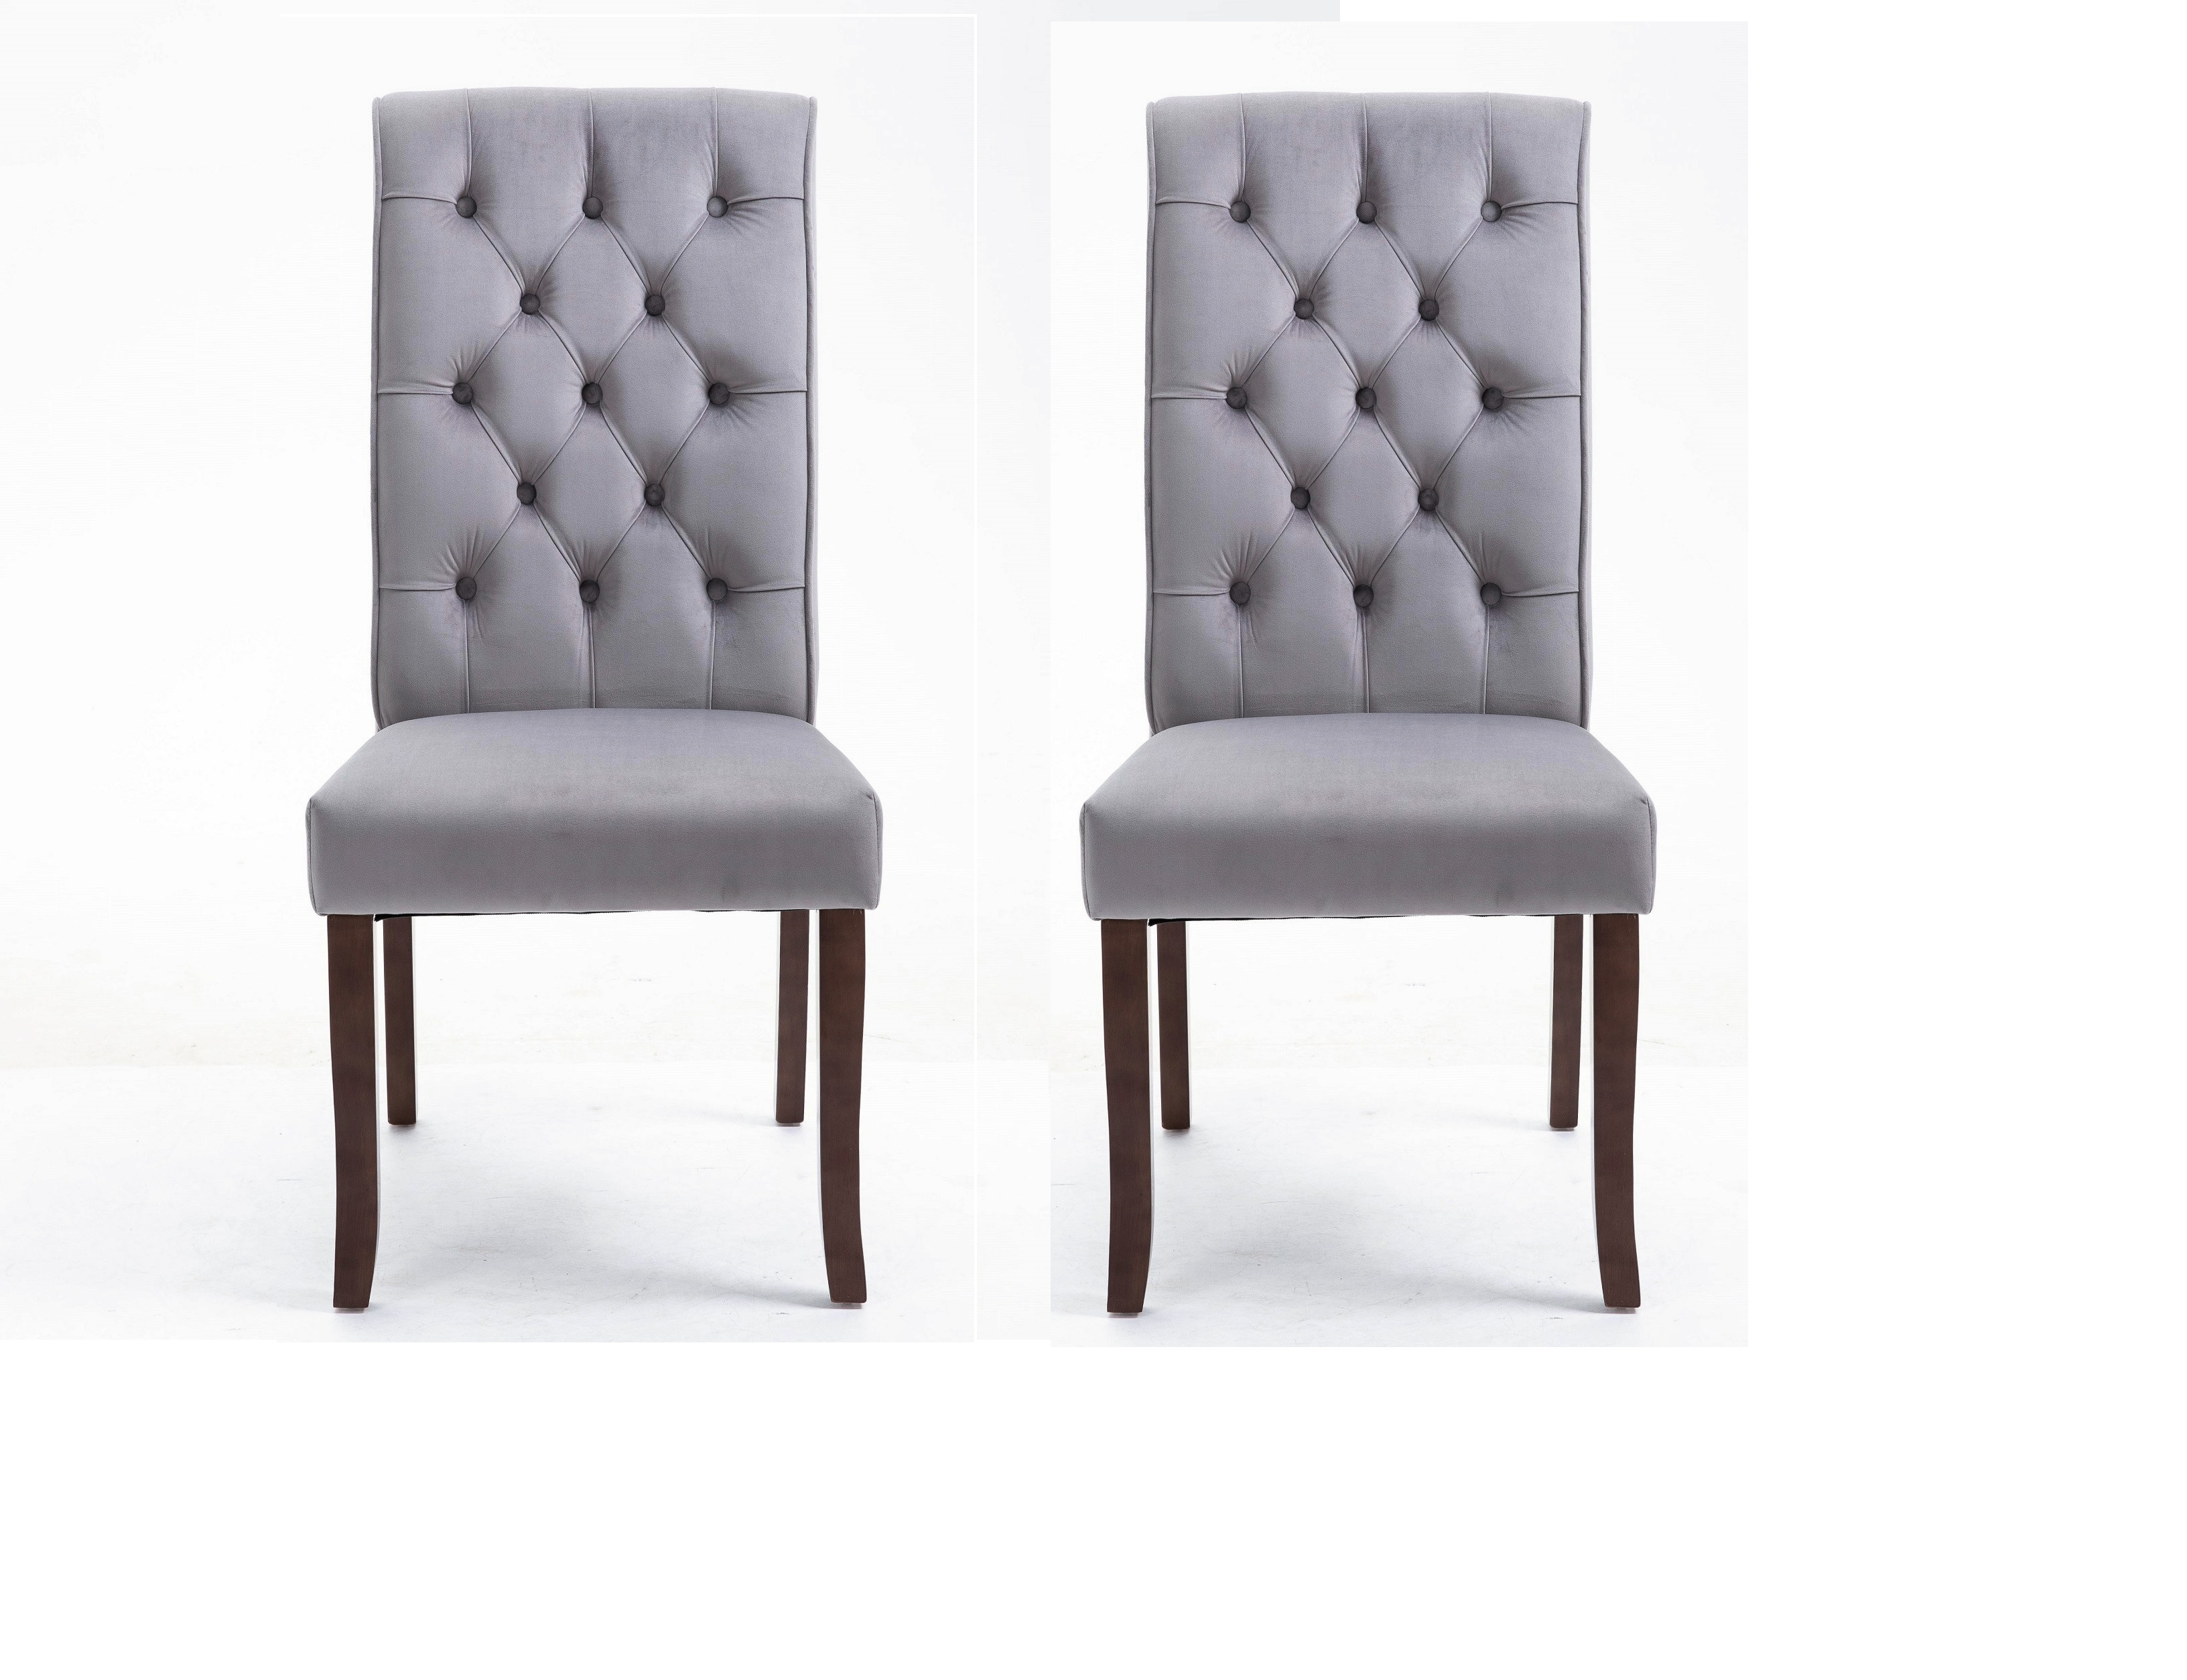 Upholstered Dining Chairs Set Of 2 43 X19 6 X27 5 Tufted High